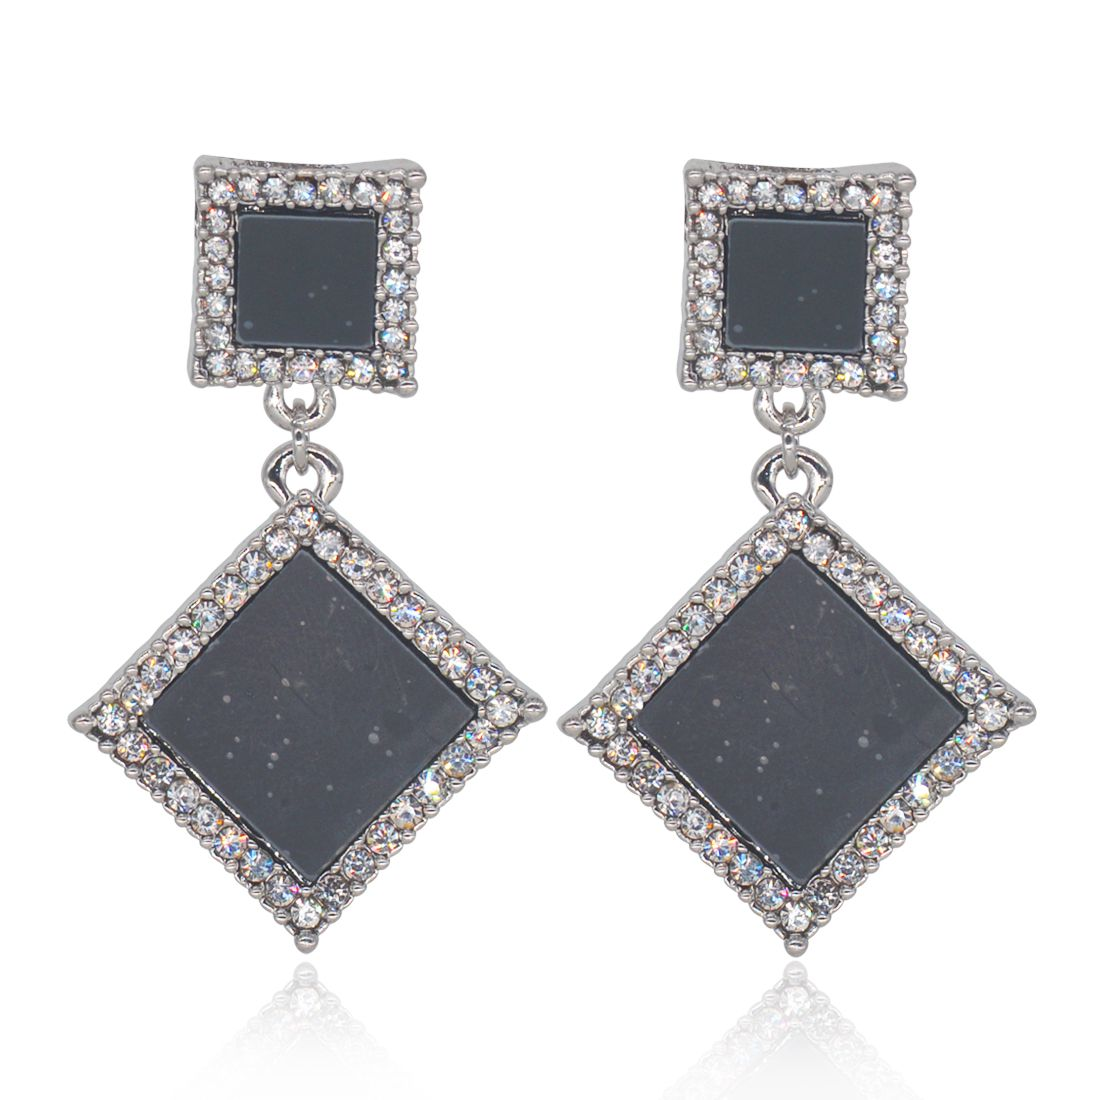 Glitters White Stone Designer Earrings for Women / Girls